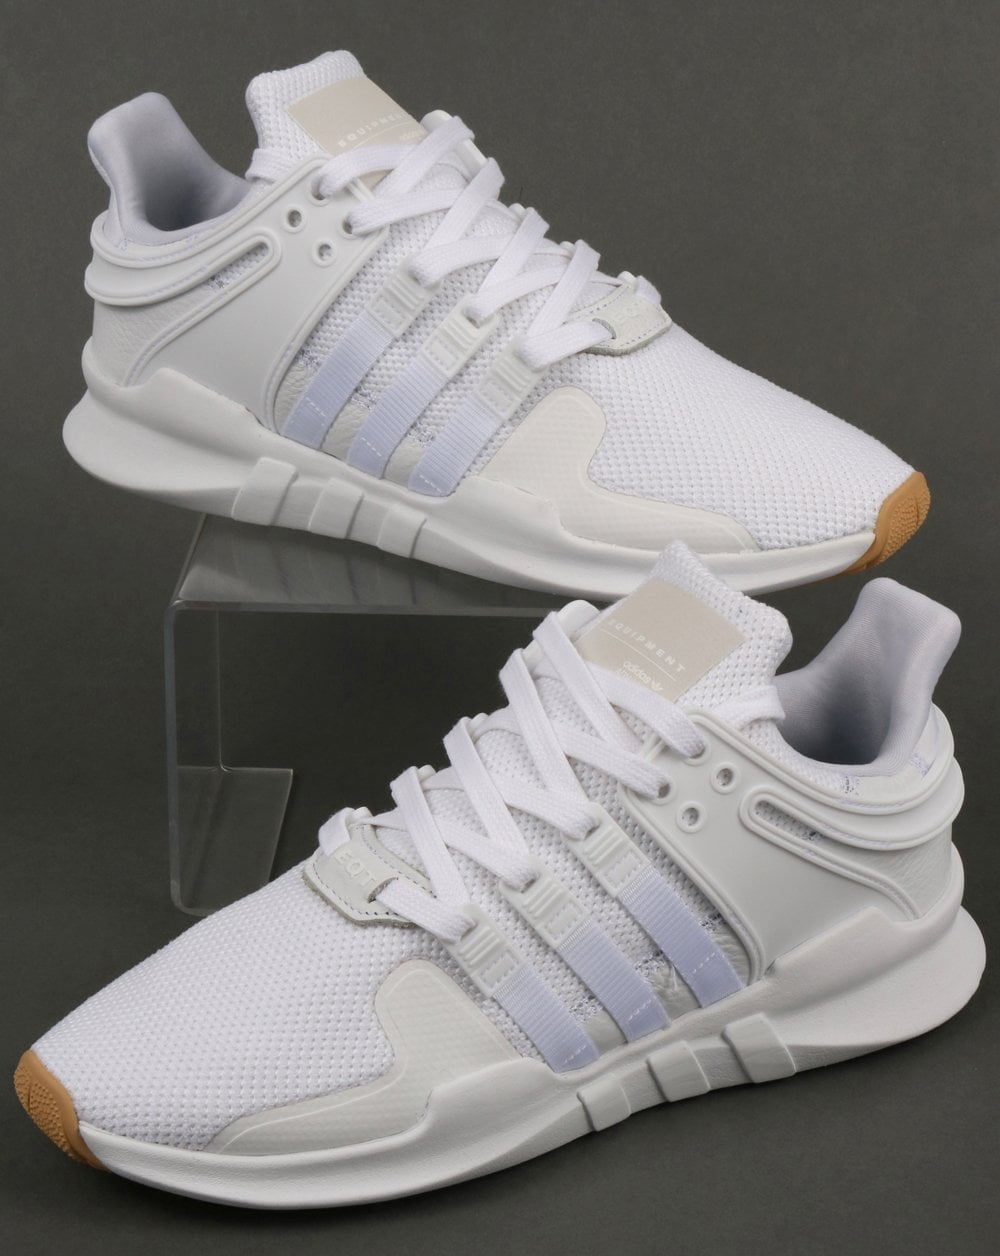 super popular 4c8d5 d5f7b Adidas EQT Support Adv Trainers White/White/Gum